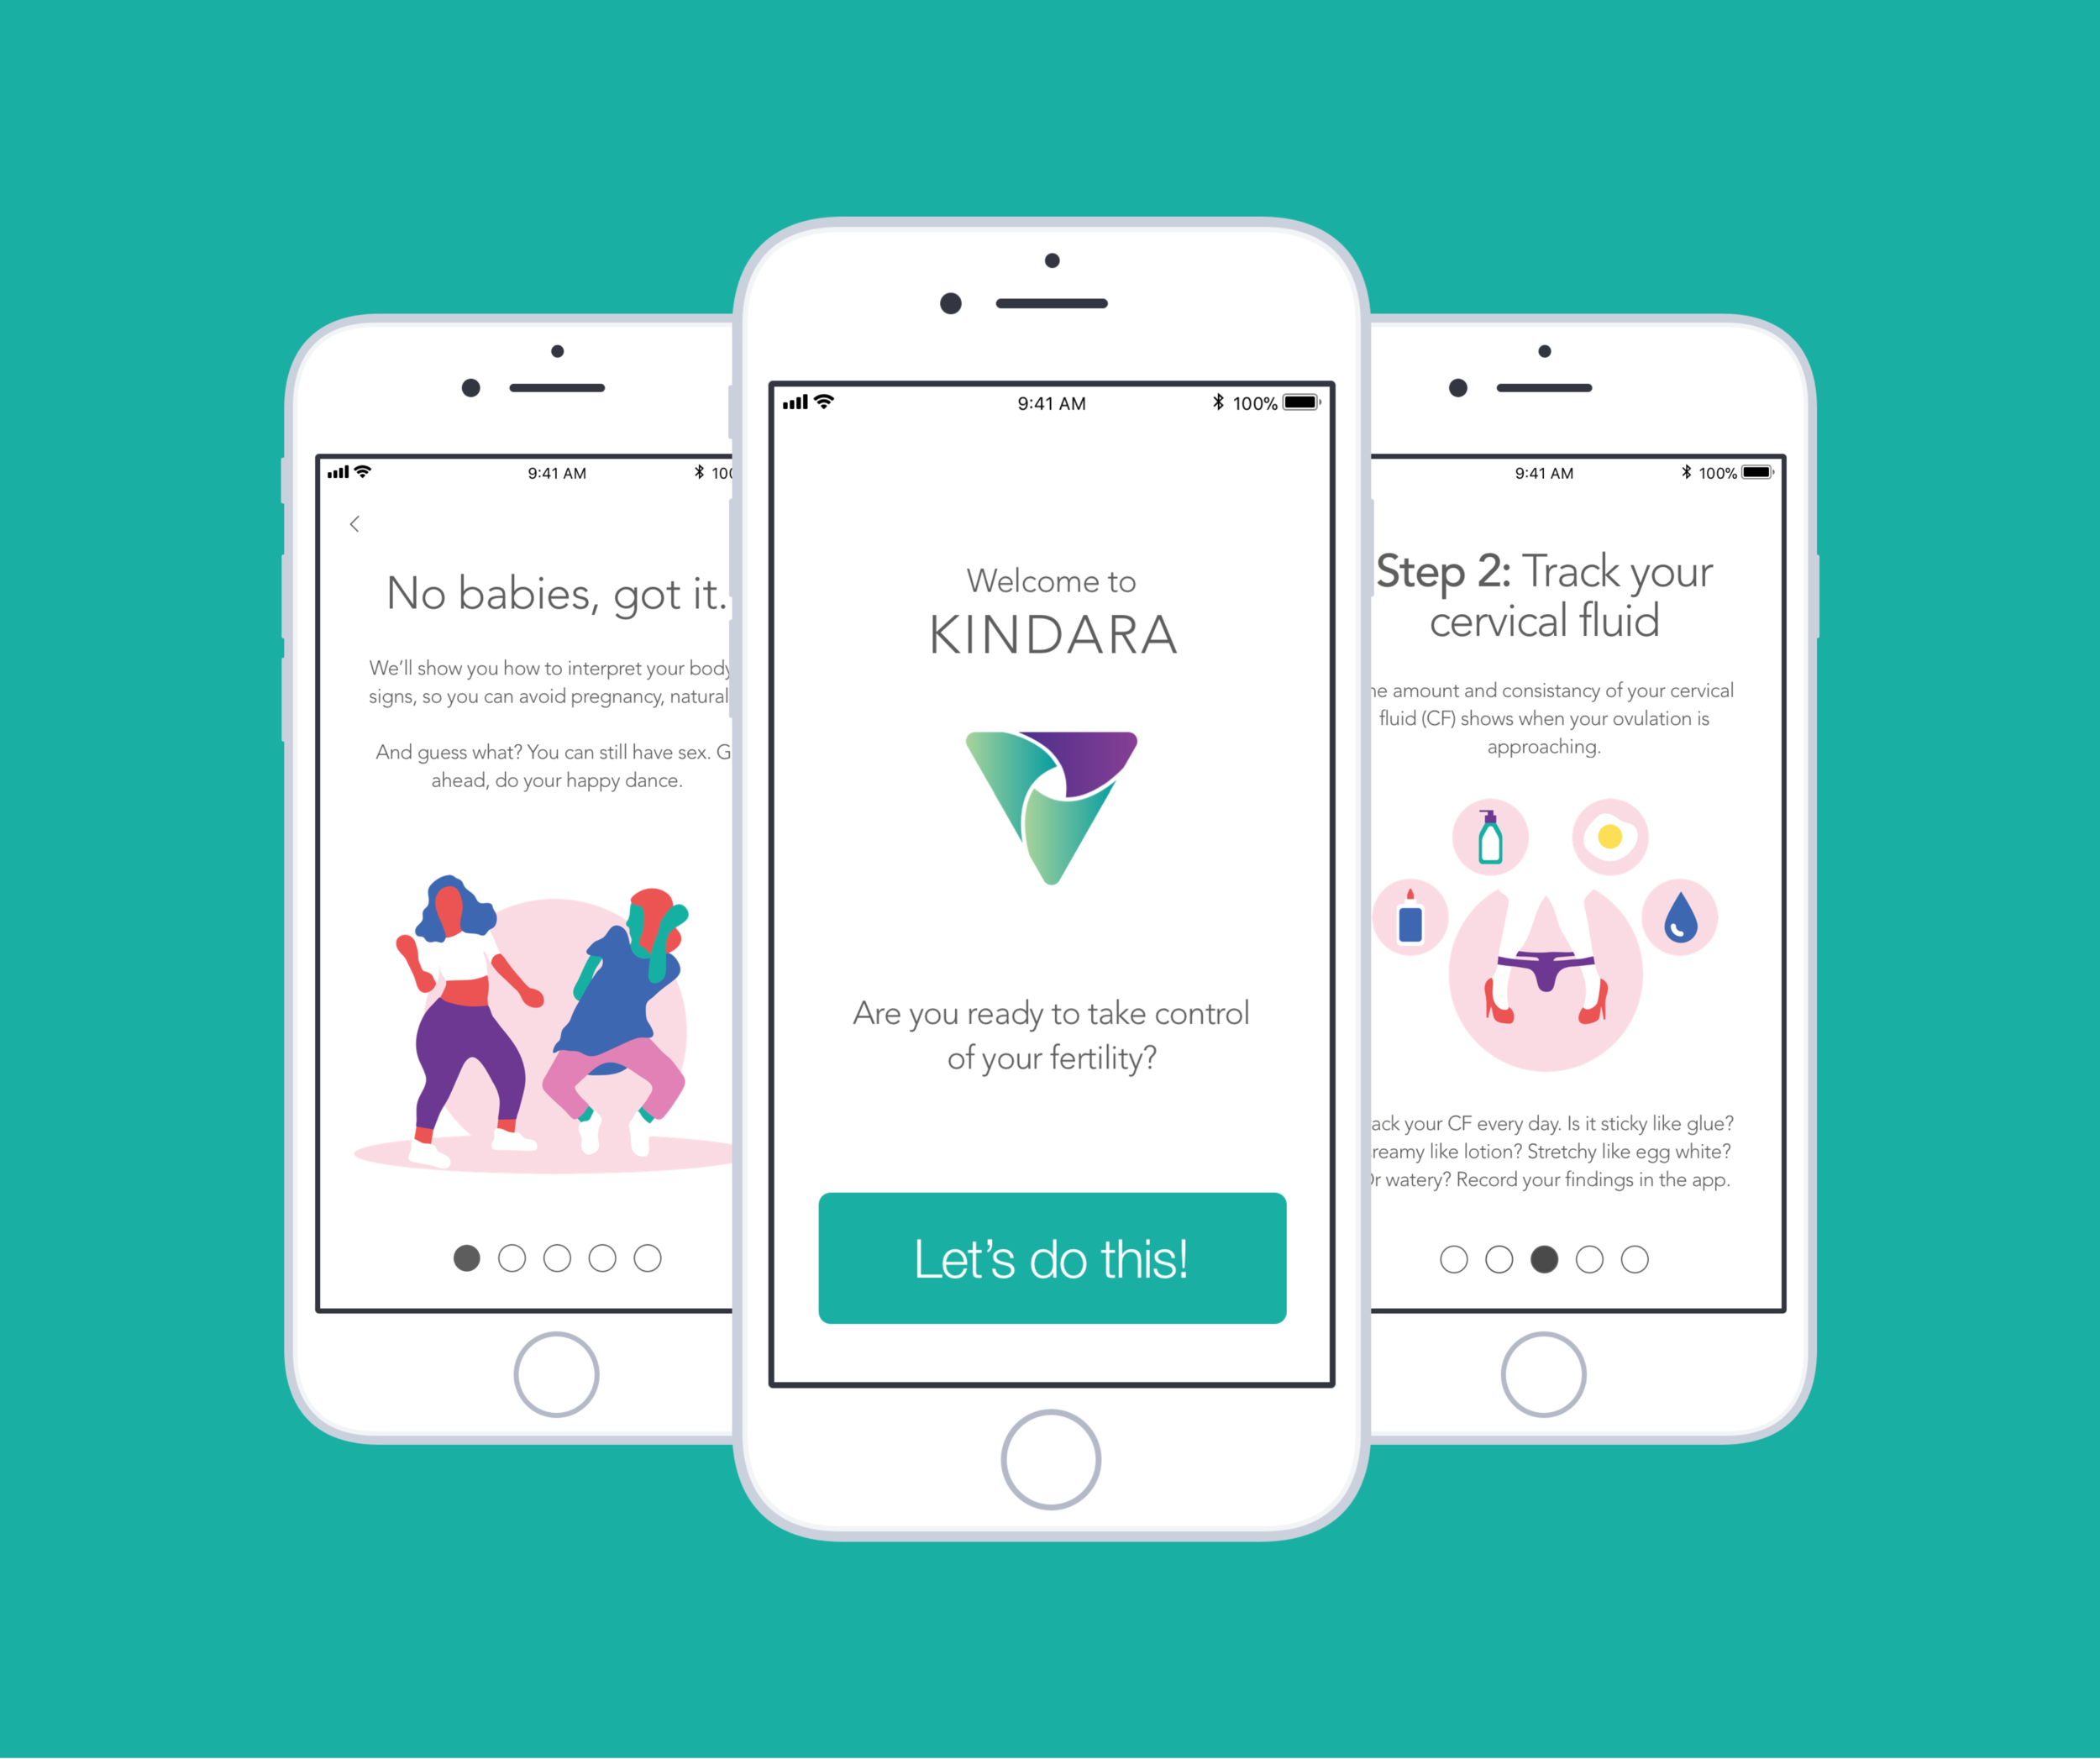 Kindara - Kindara is a fertility tracking app that inspired my first UX case study. I used data collected through my research and usability testing to redesign the iOS onboarding flow, with a focus on empowering new users to take control of their fertility.View the Case Study